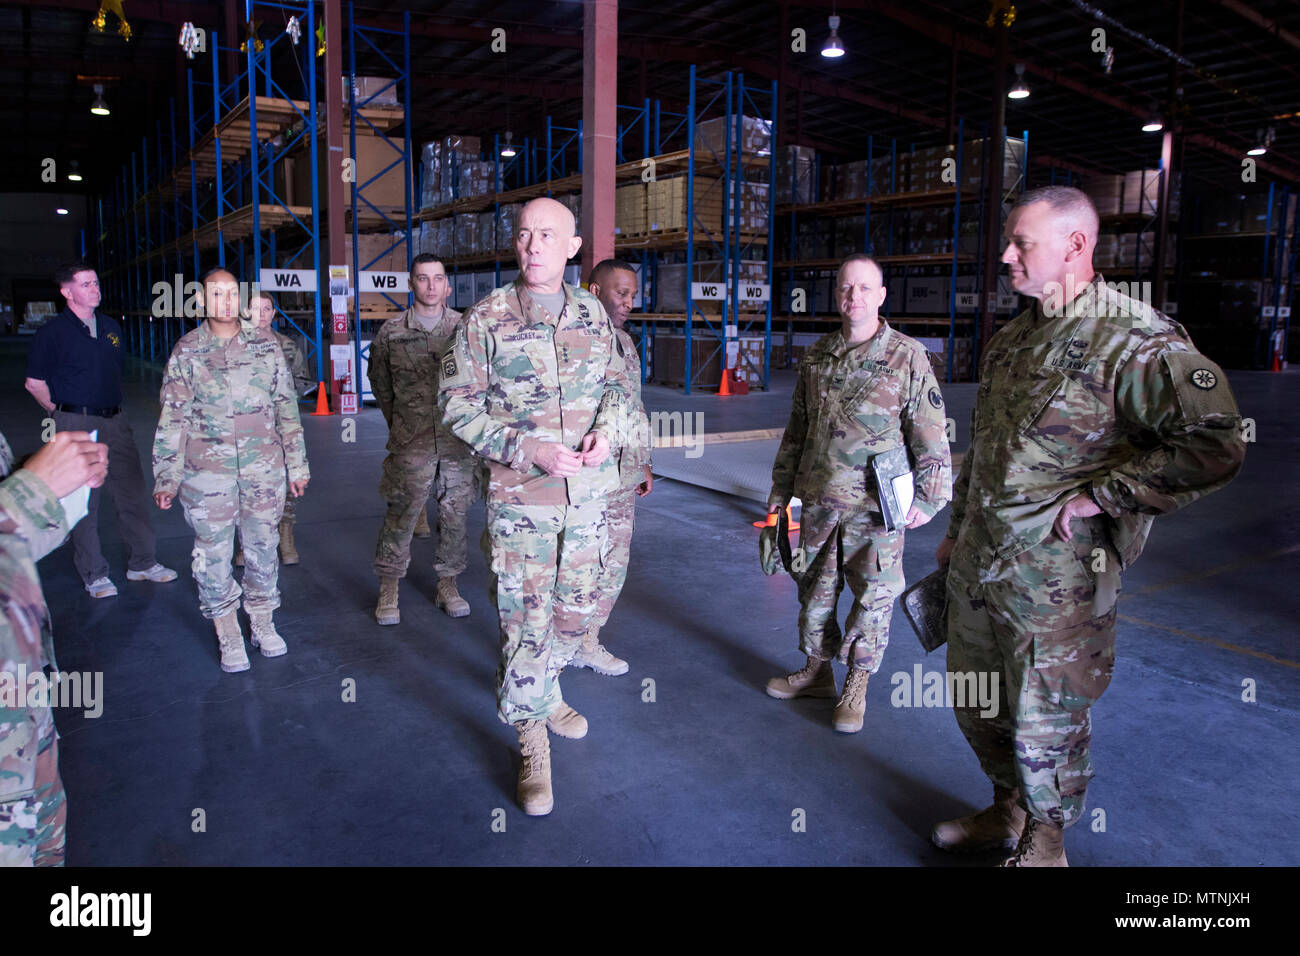 U.S. Army Reserve Commanding General, Lt. Gen. Charles D. Luckey, tours the Iraq Train and Equipment Fund (ITEF) warehouse at Camp Arifjan, Kuwait, Jan. 4, 2017. (U.S. Army Photo by Staff Sgt. Dalton Smith) - Stock Image